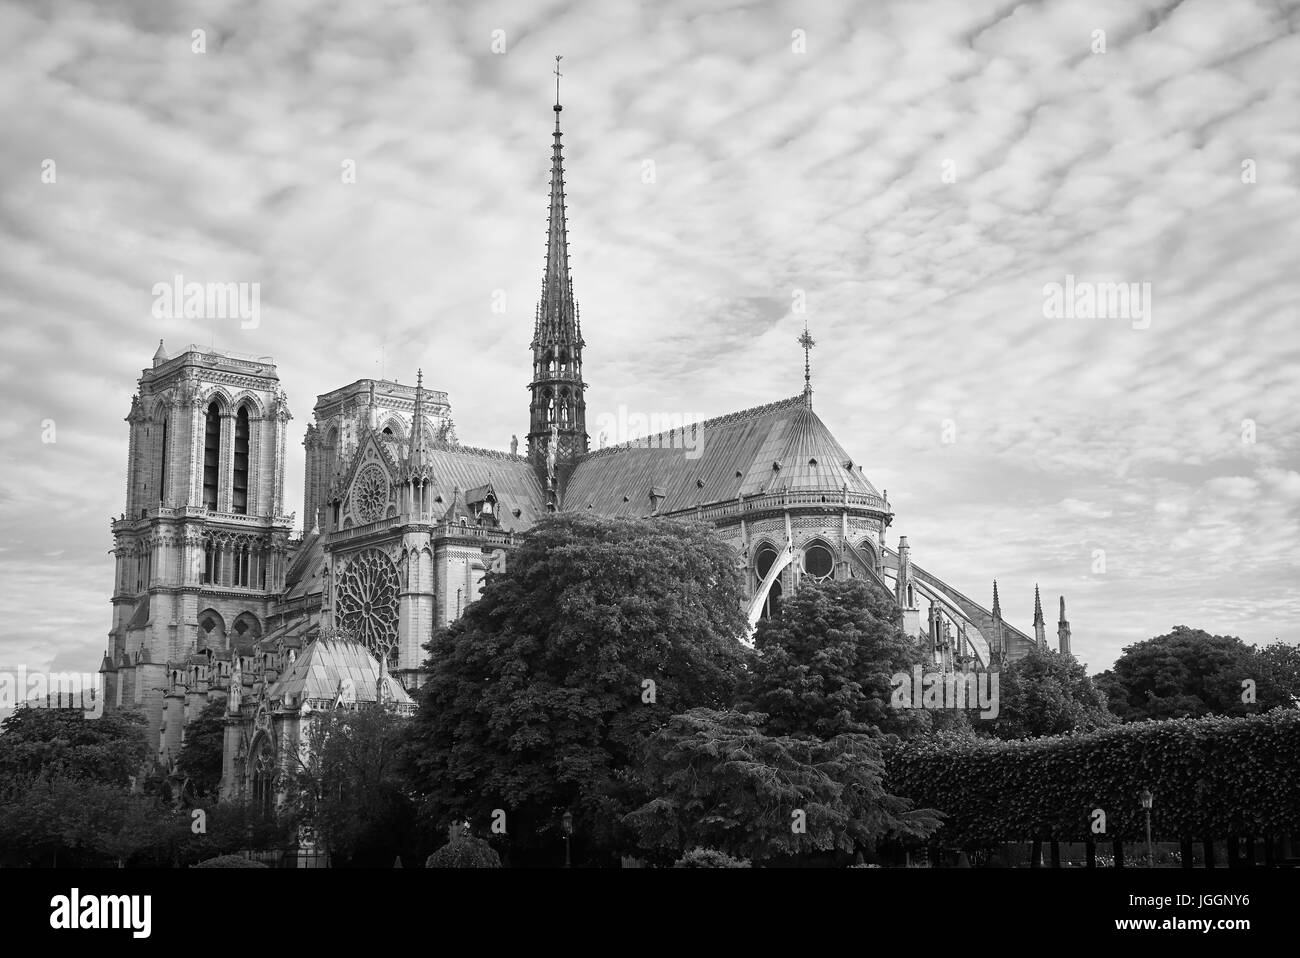 La Cathédrale Notre Dame, Paris, France Photo Stock